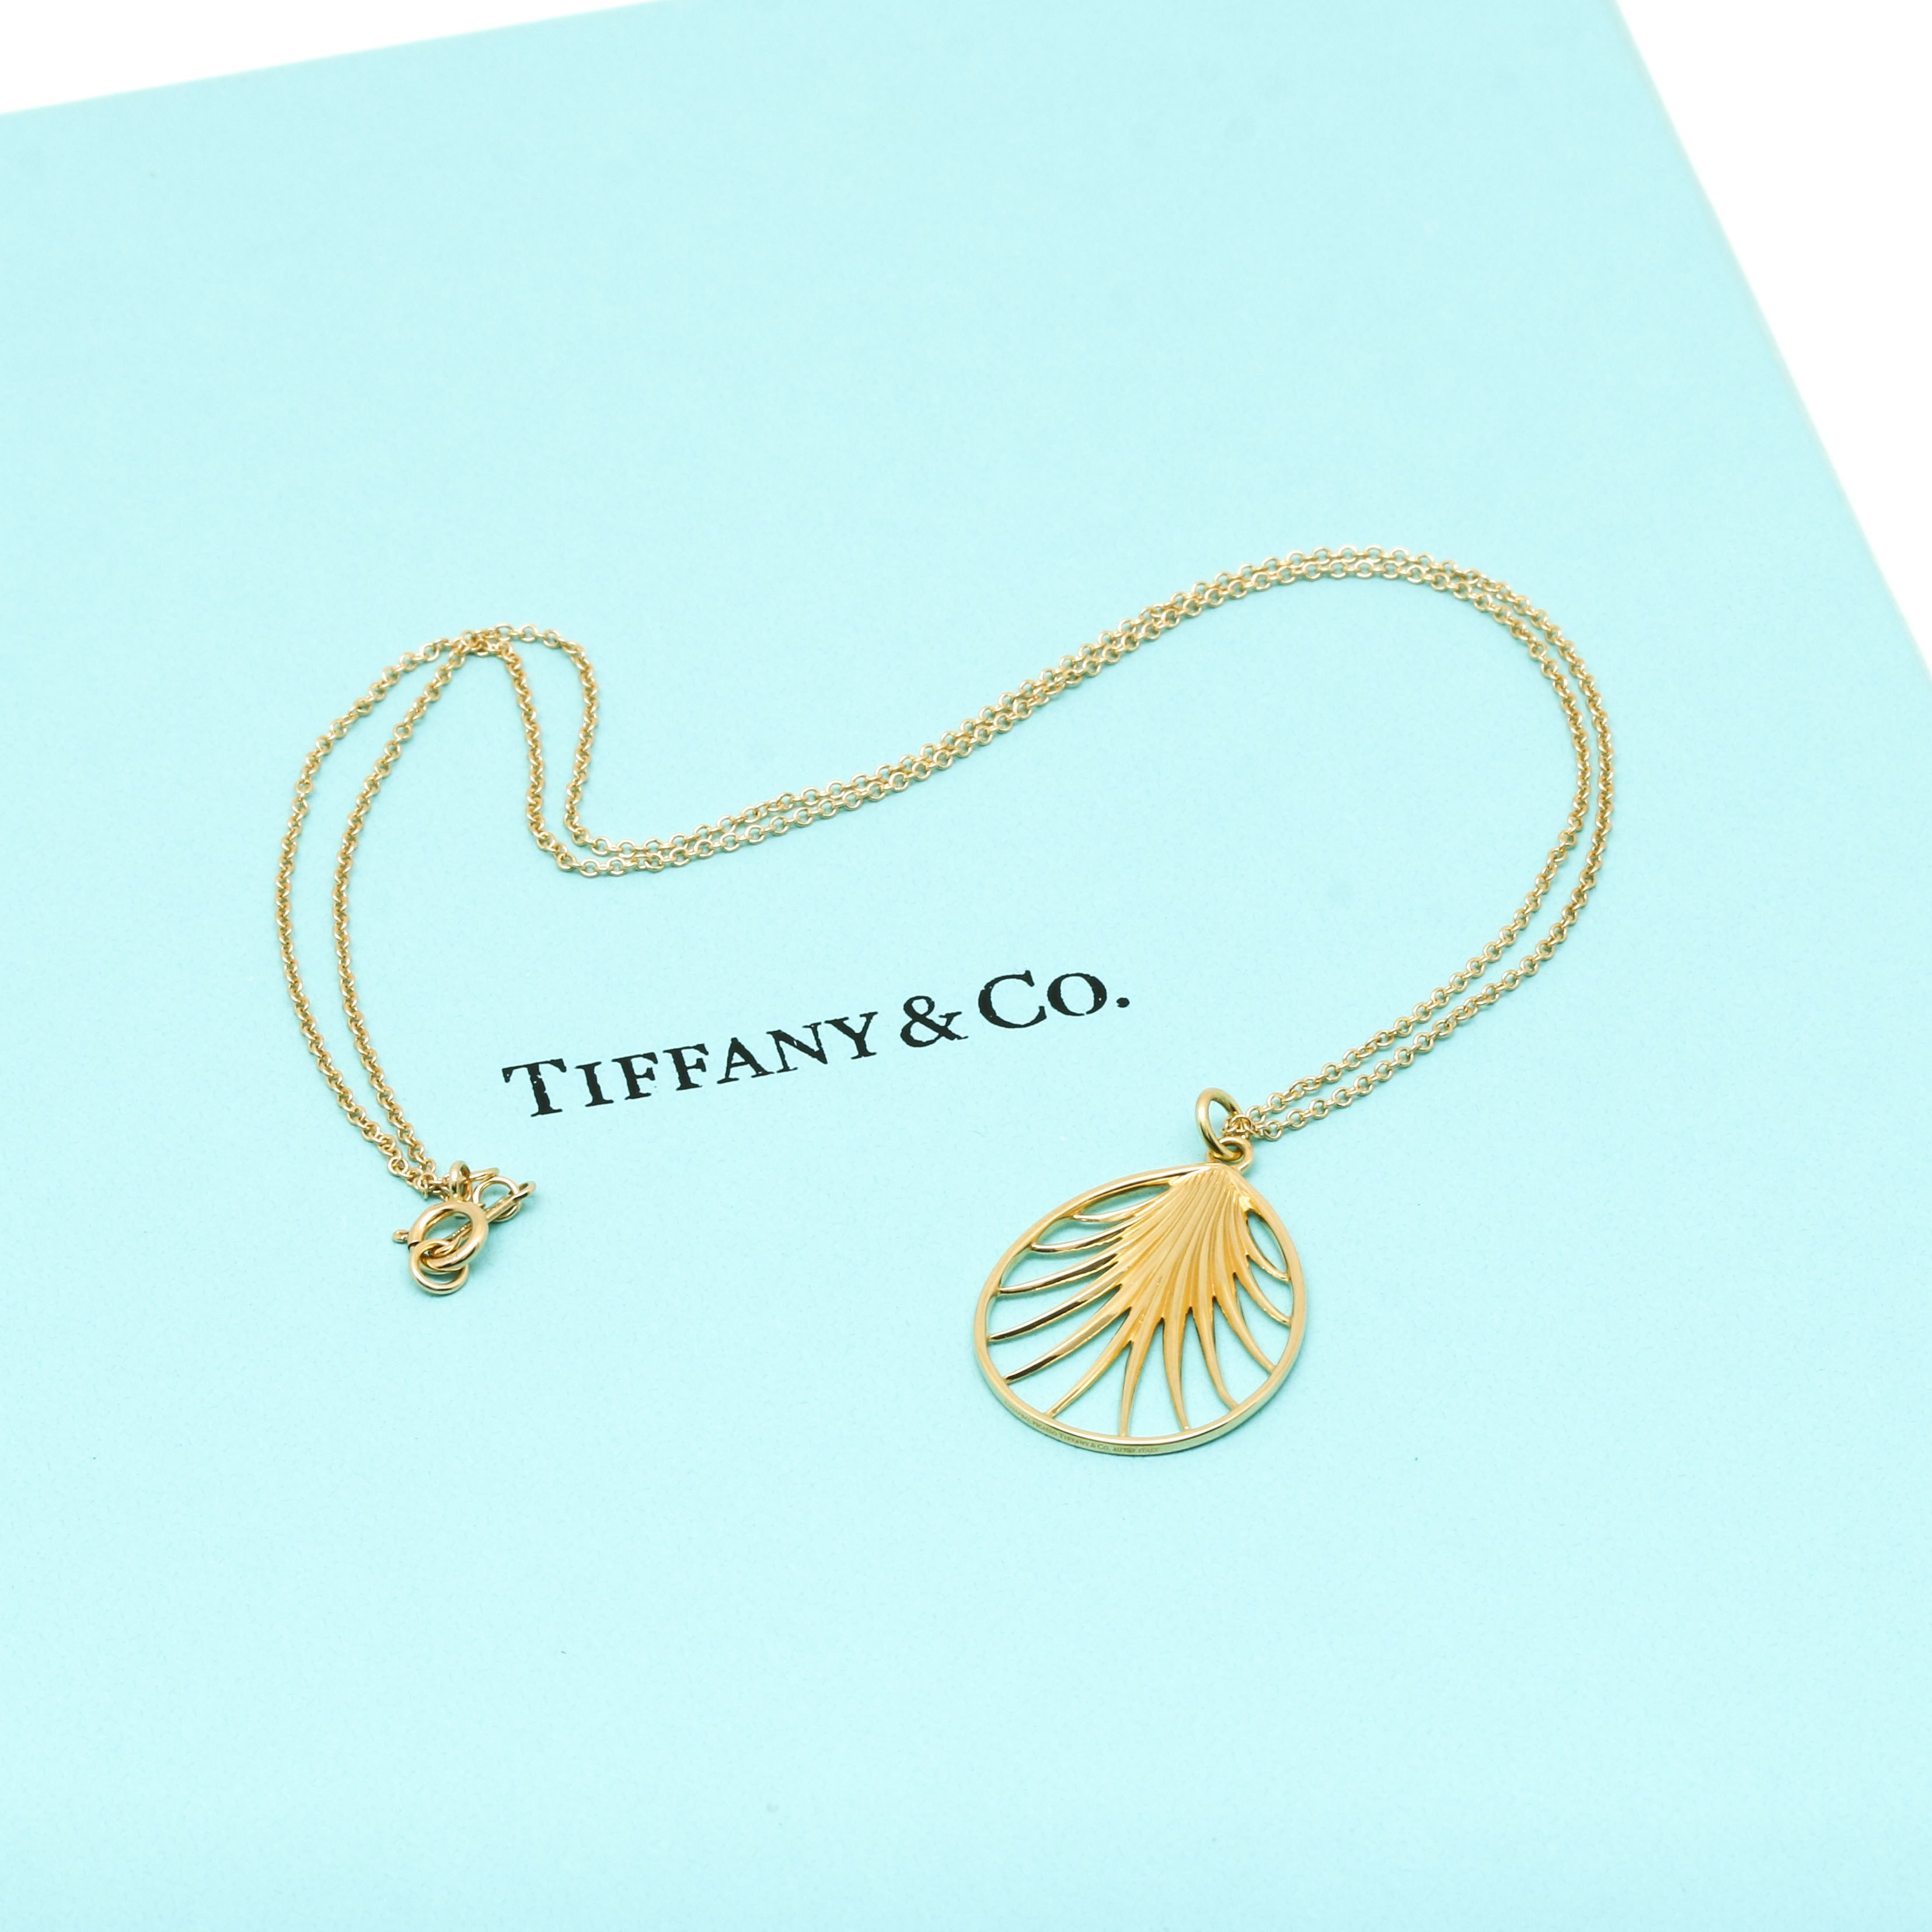 Paloma Picasso for Tiffany & Co. 18K Yellow Gold Pendant Necklace